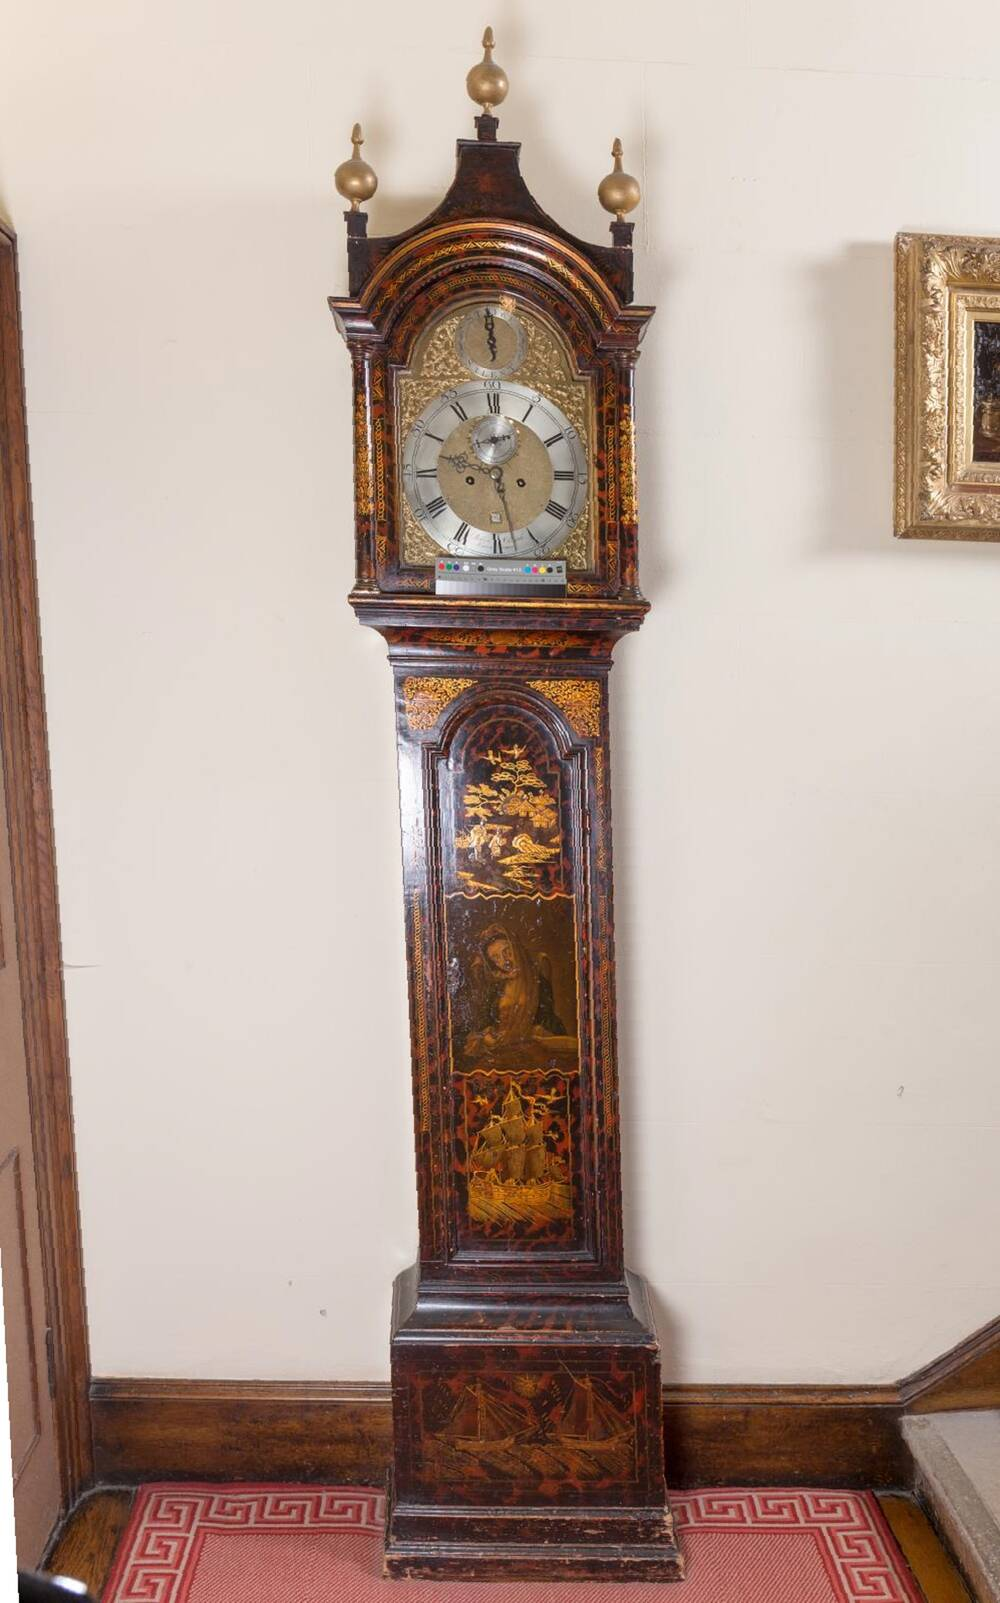 A longcase clock stands against a plain grey wall at the foot of some stairs. It stands on a red and white patterned rug. Its wooden case is highly polished and decorated with patterns and an image of a ship and a saintly woman. There are elaborate bronze finials on top of the clock.